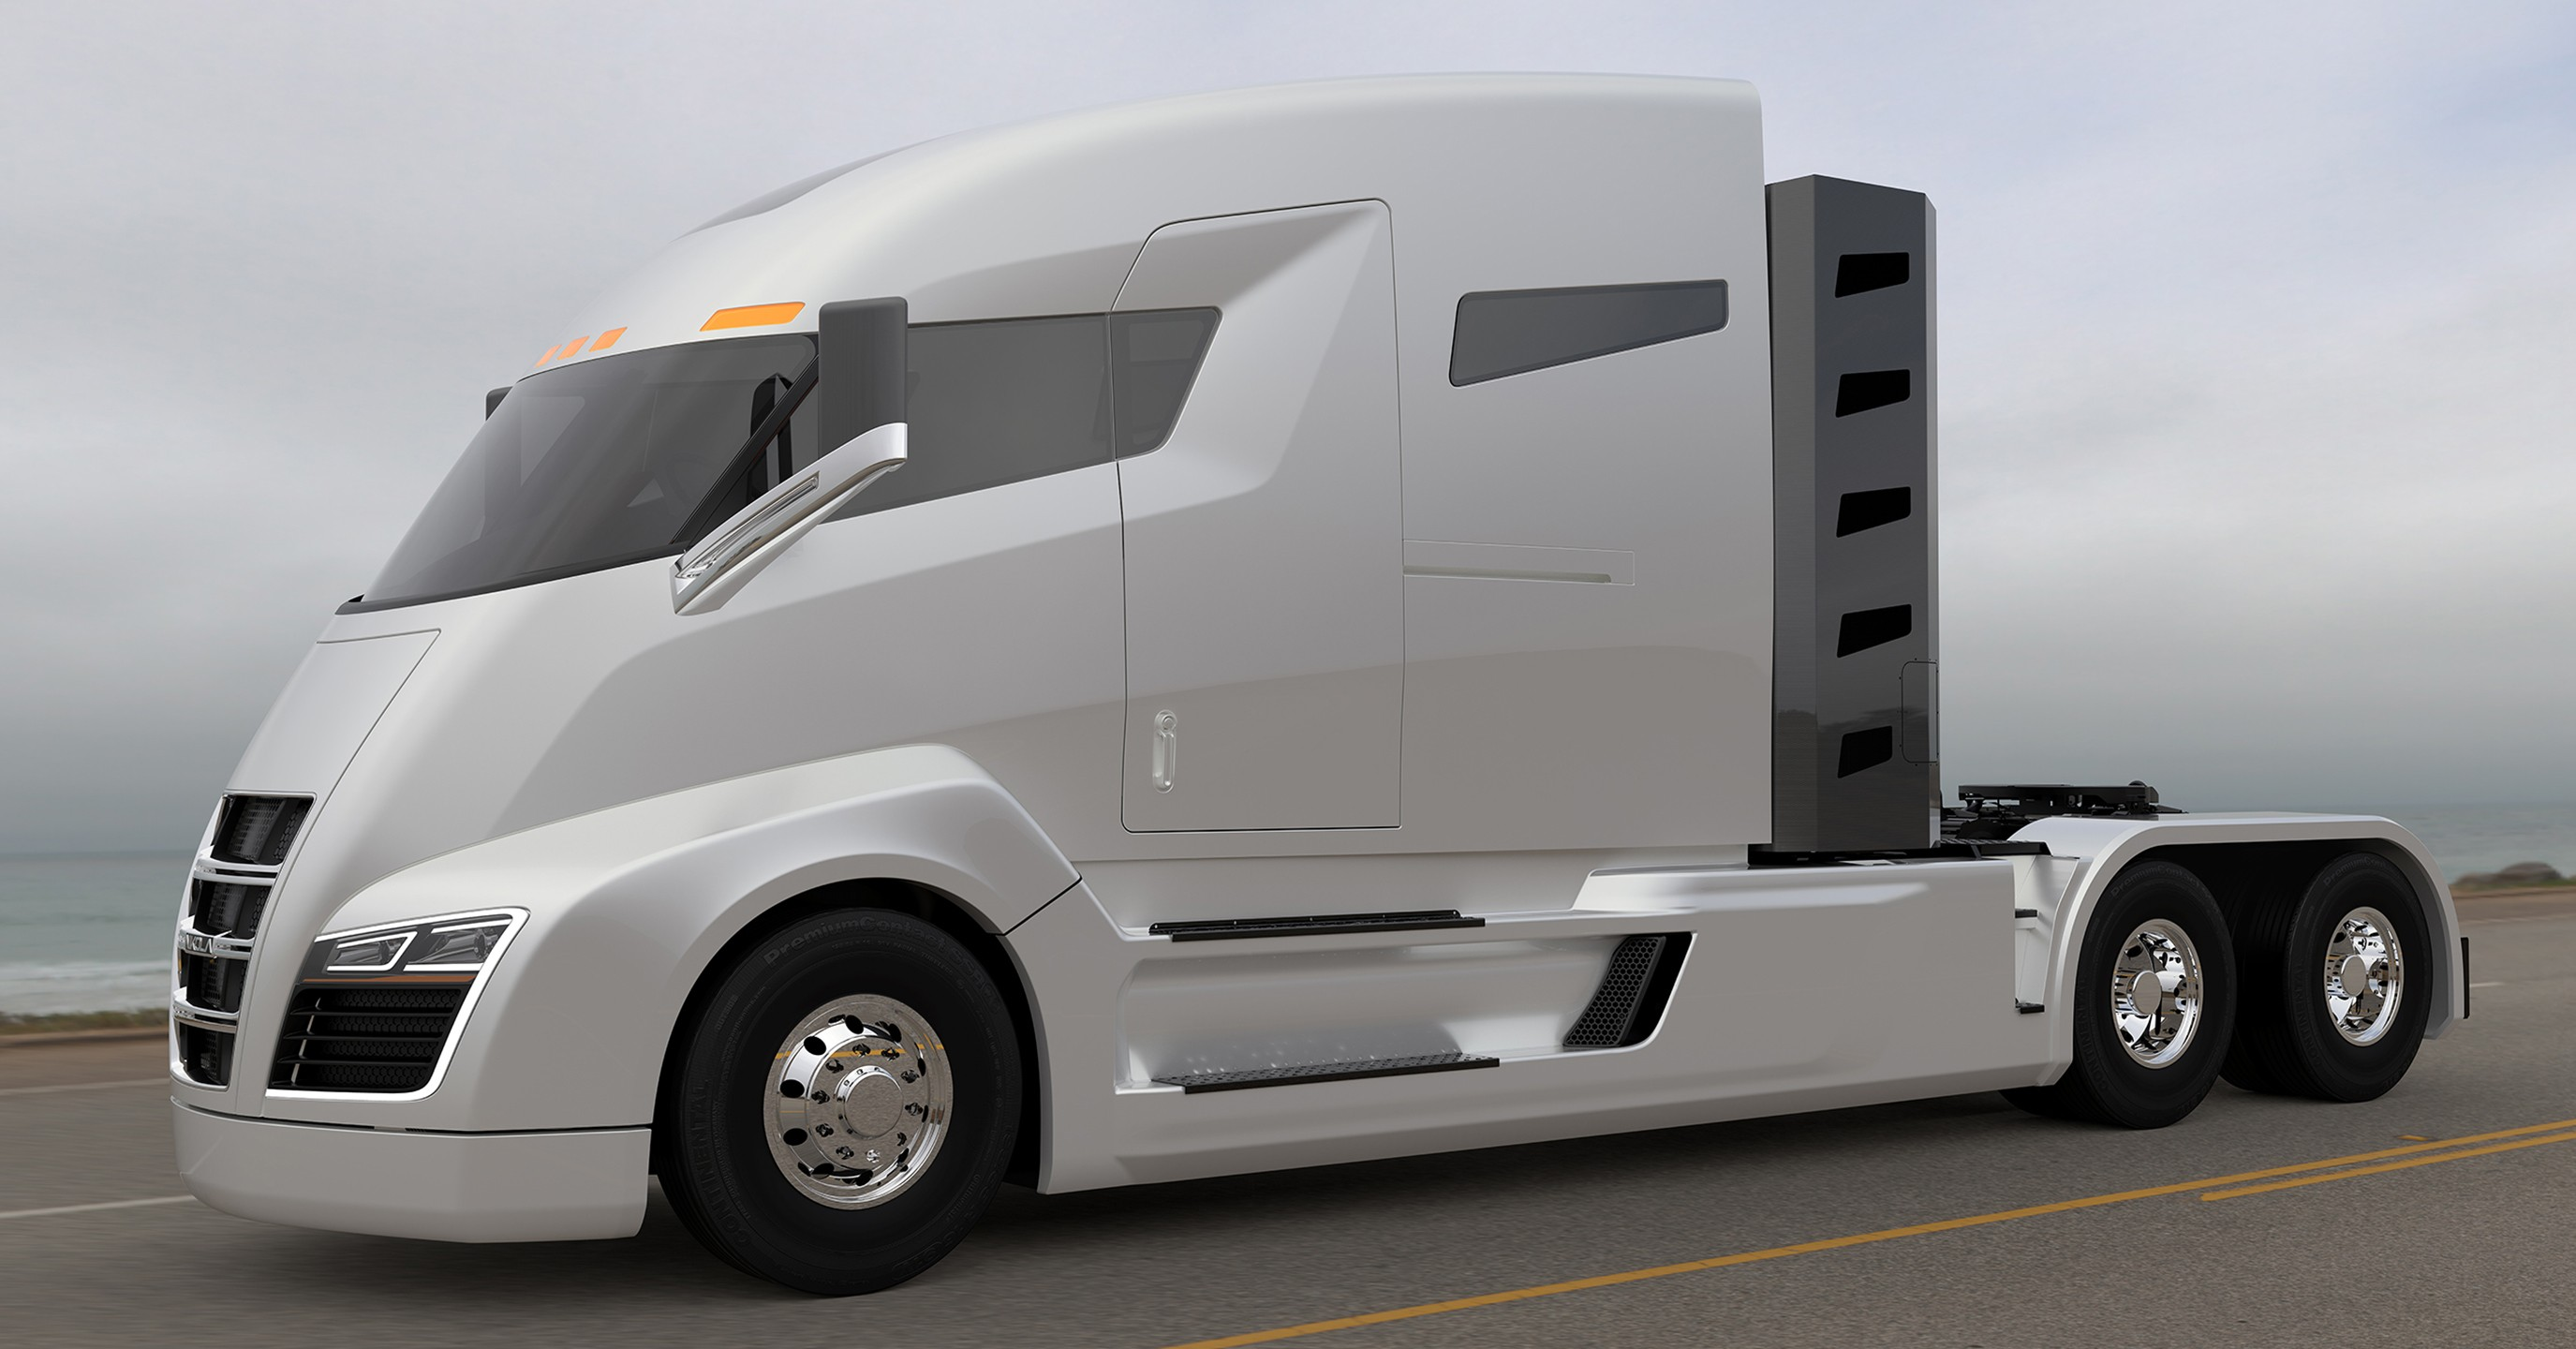 The Company Will Unveil Its First Electric Truck Prototype On December 2 2016 In Salt Lake City But Has Over 7 000 Reservations For Production Model